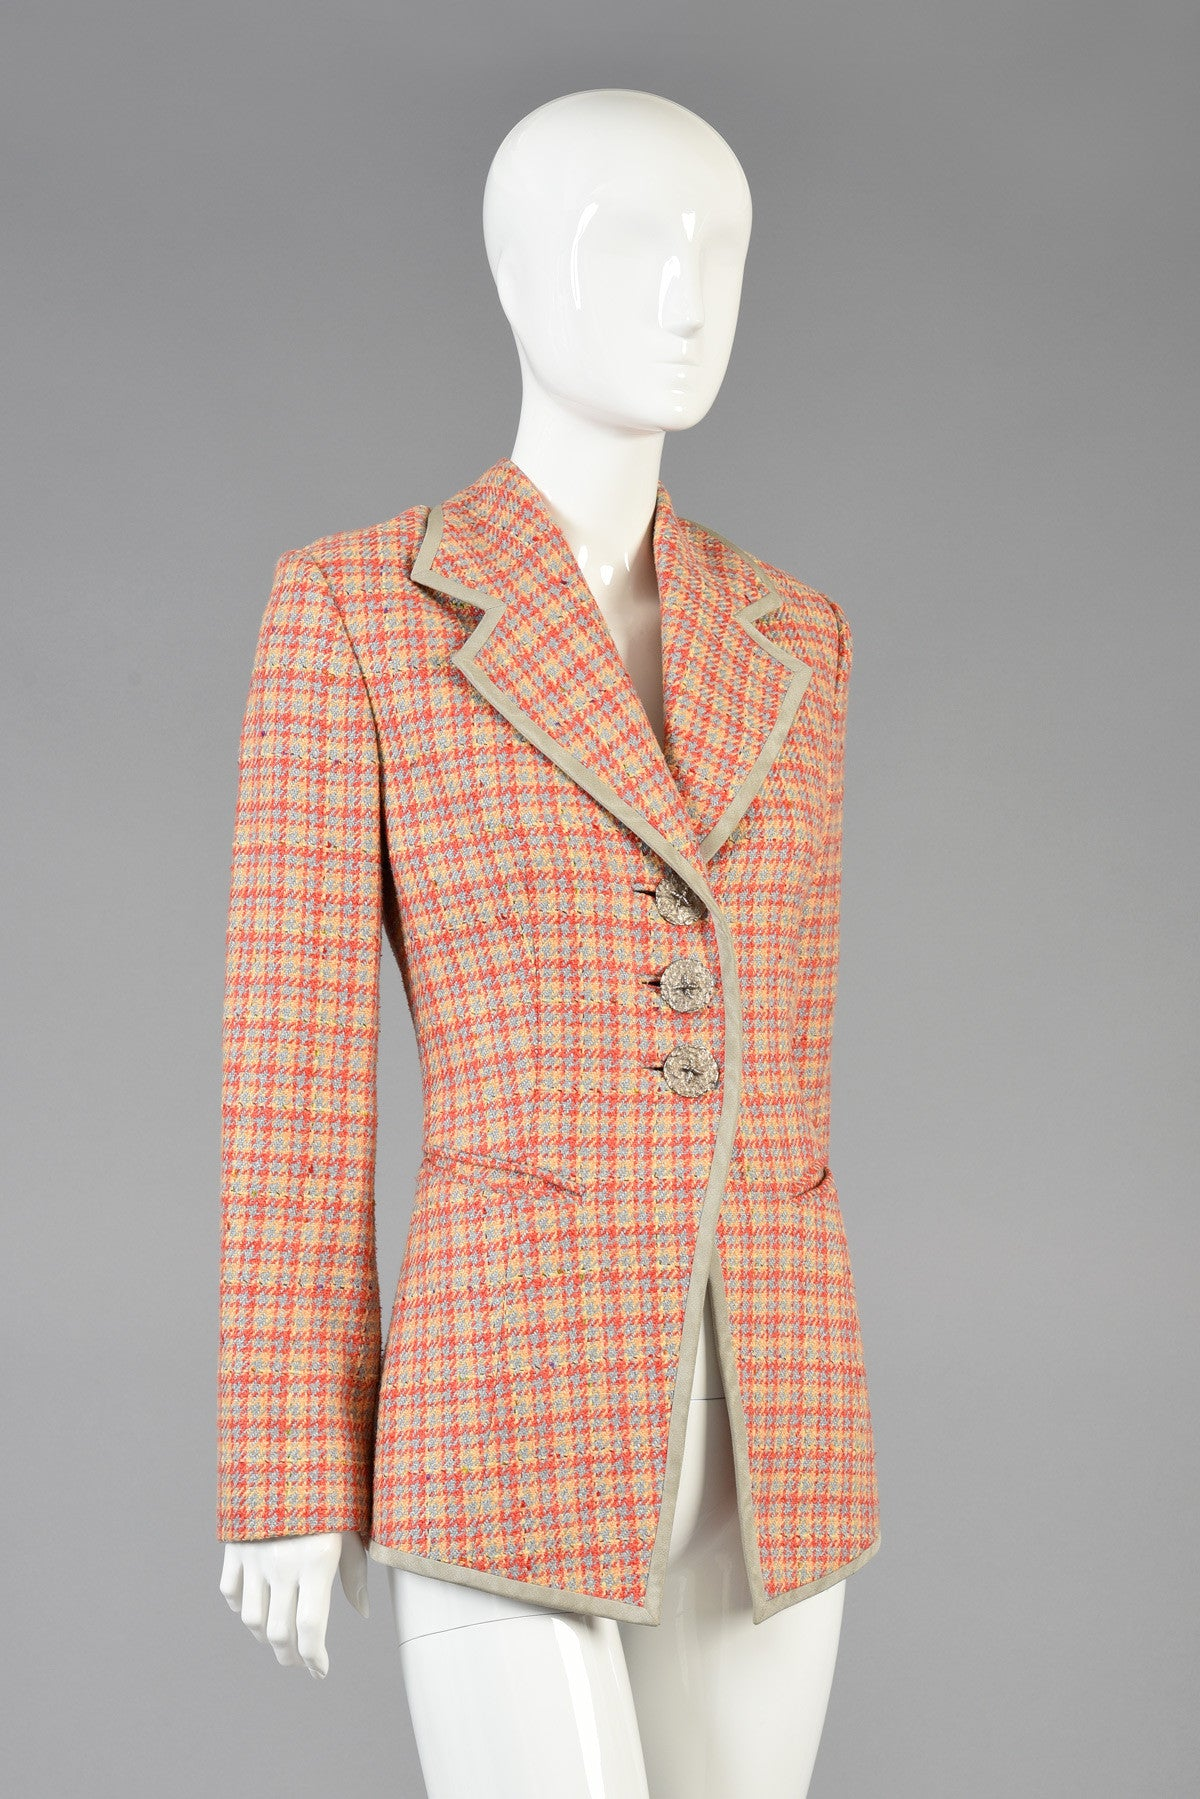 1990s Christian Dior Houndstooth Plaid Jacket Bustown Modern